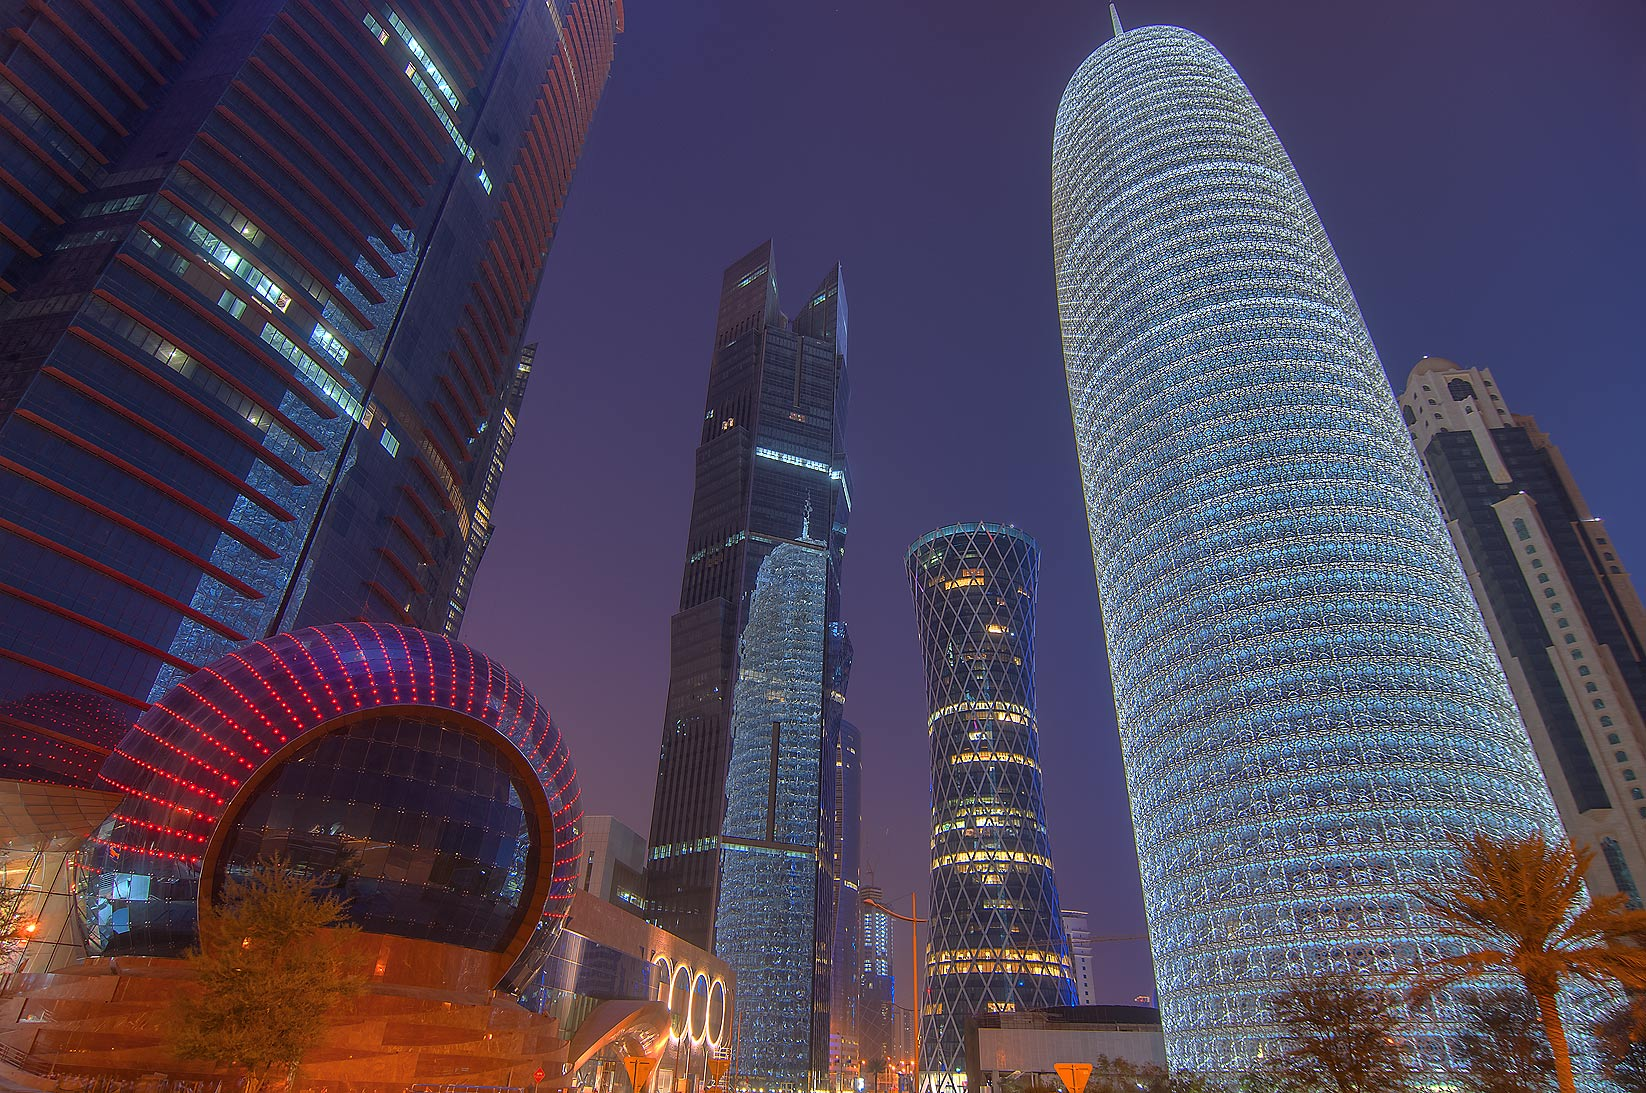 Glowing WTC and Burj Qatar Tower in West Bay from Corniche promenade. Doha, Qatar